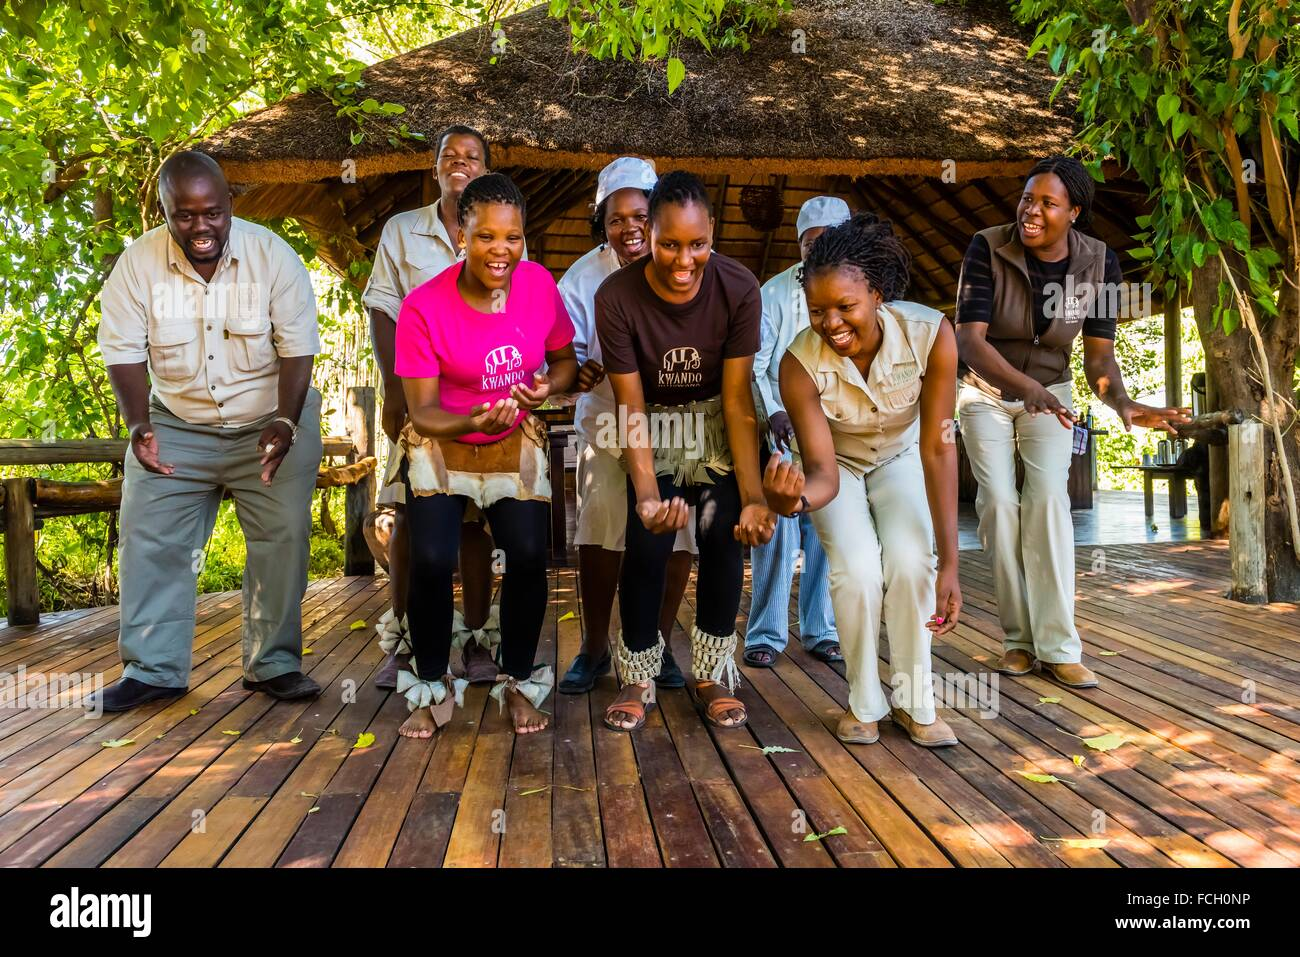 Staff members of the Lebala Safari Camp at the Kwando Concession do a traditional singing and dancing performance, Stock Photo